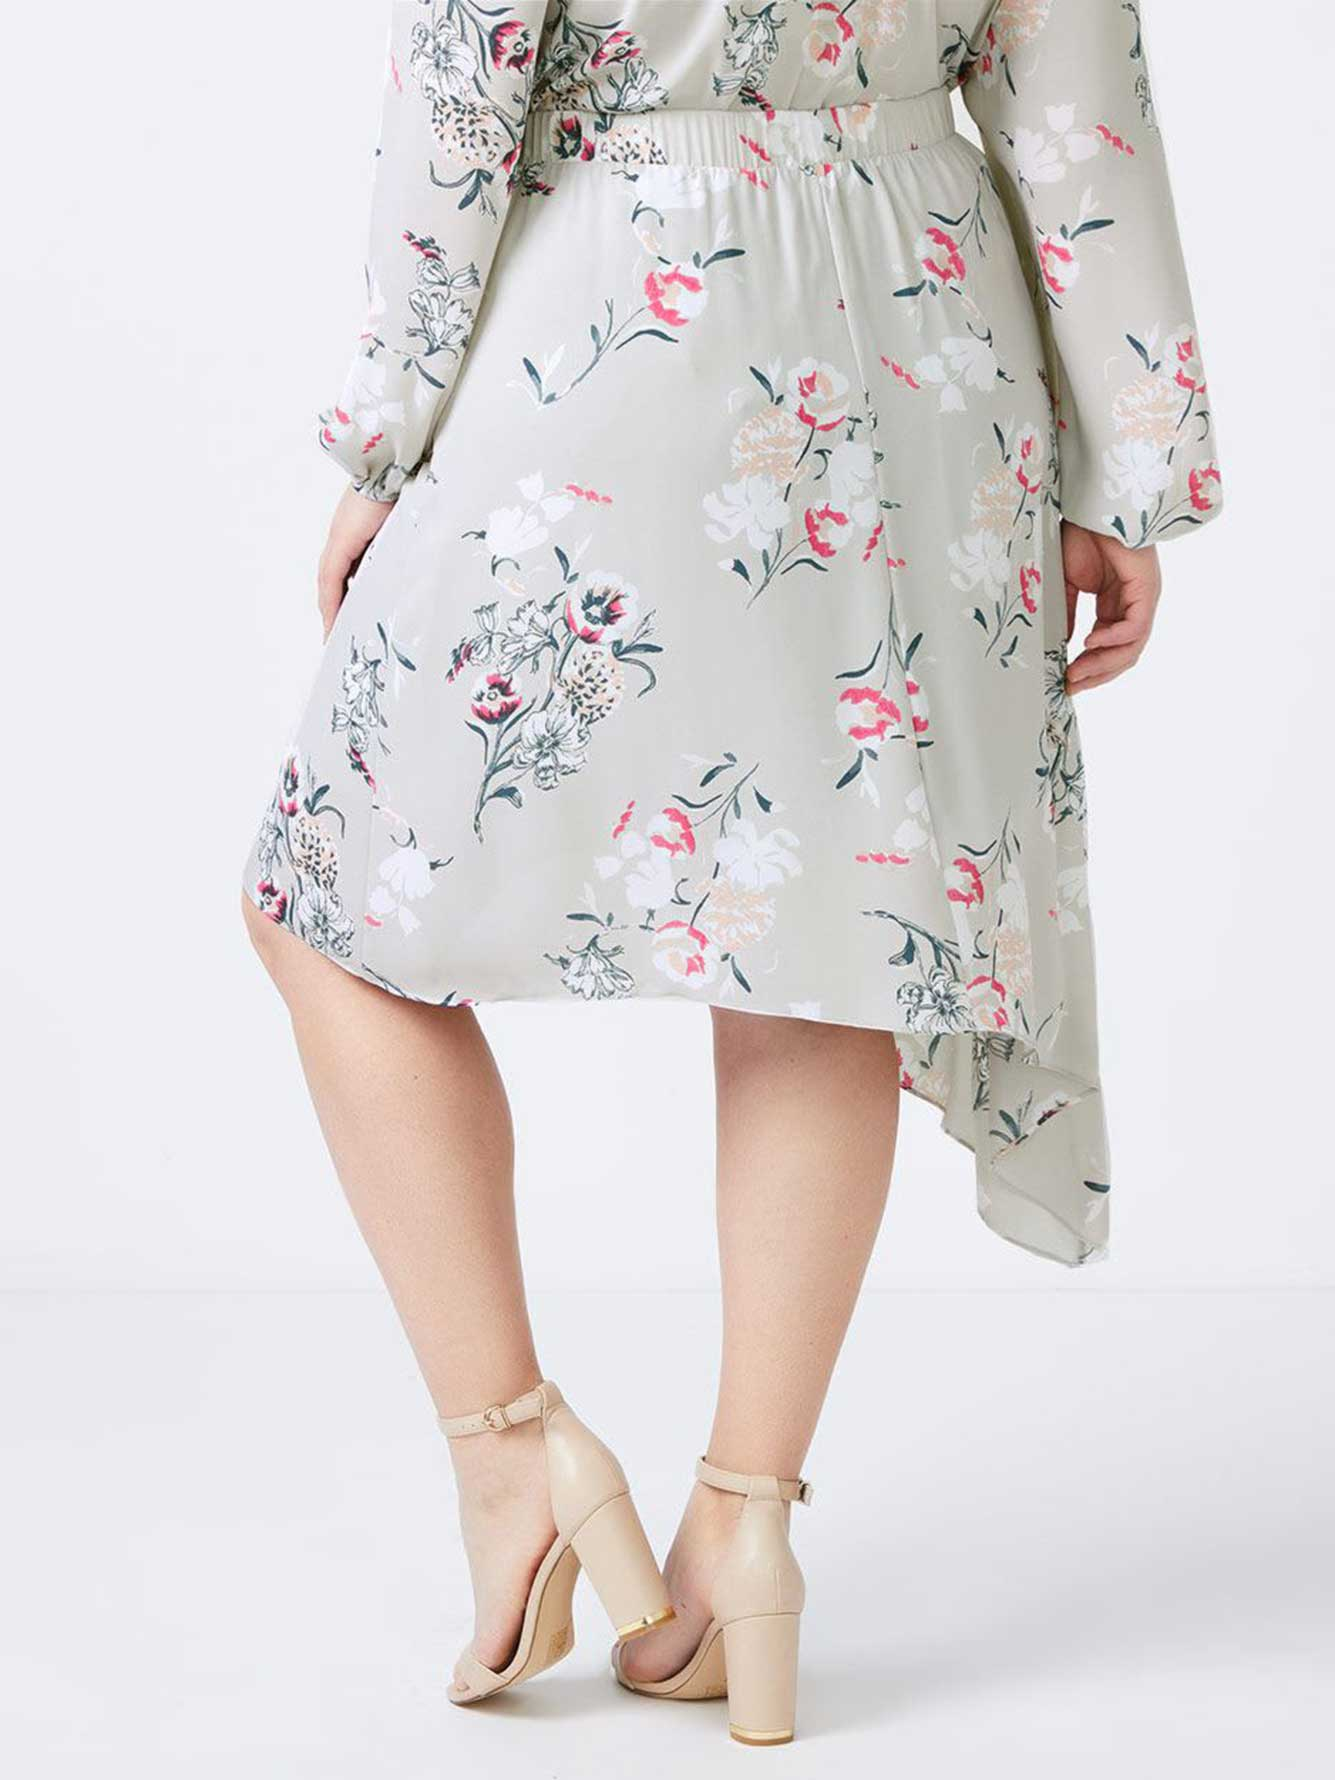 Asymmetric Floral Skirt - In Every Story